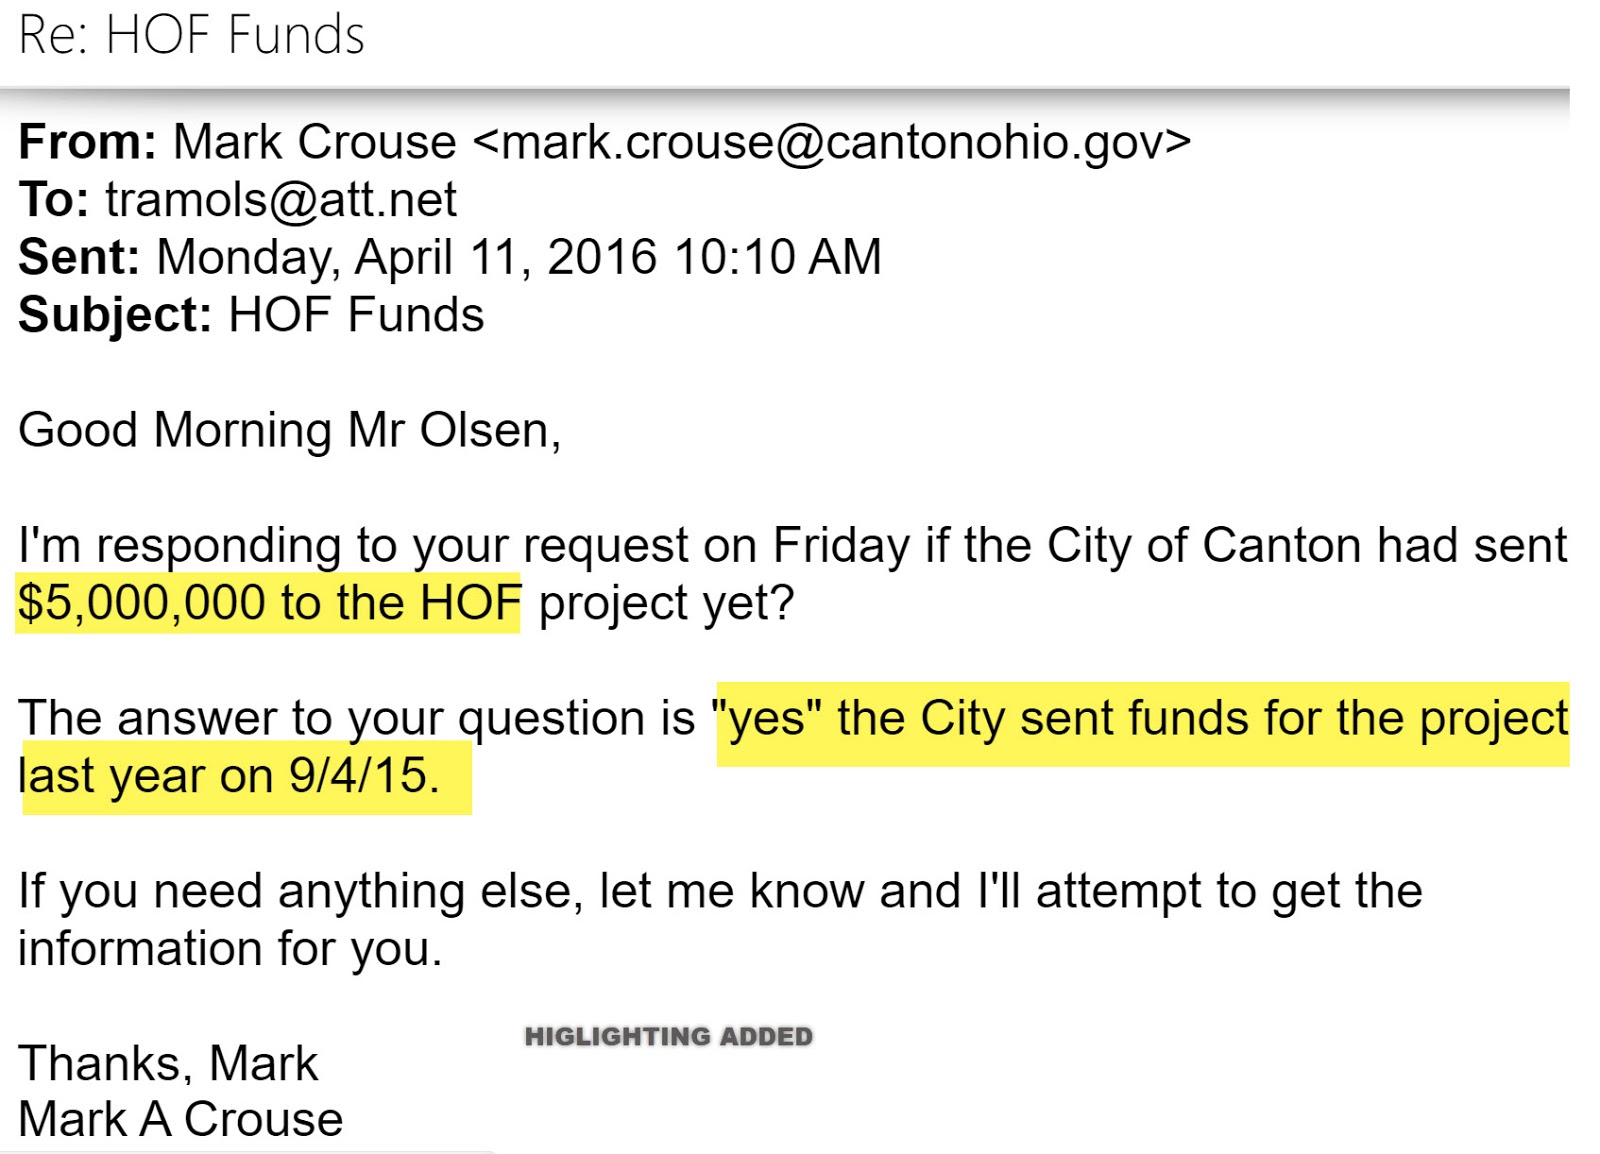 that 5 million in the view of the scpr was pretty much a former mayor william j healy ii aided and abetted by canton city council taxpayer money